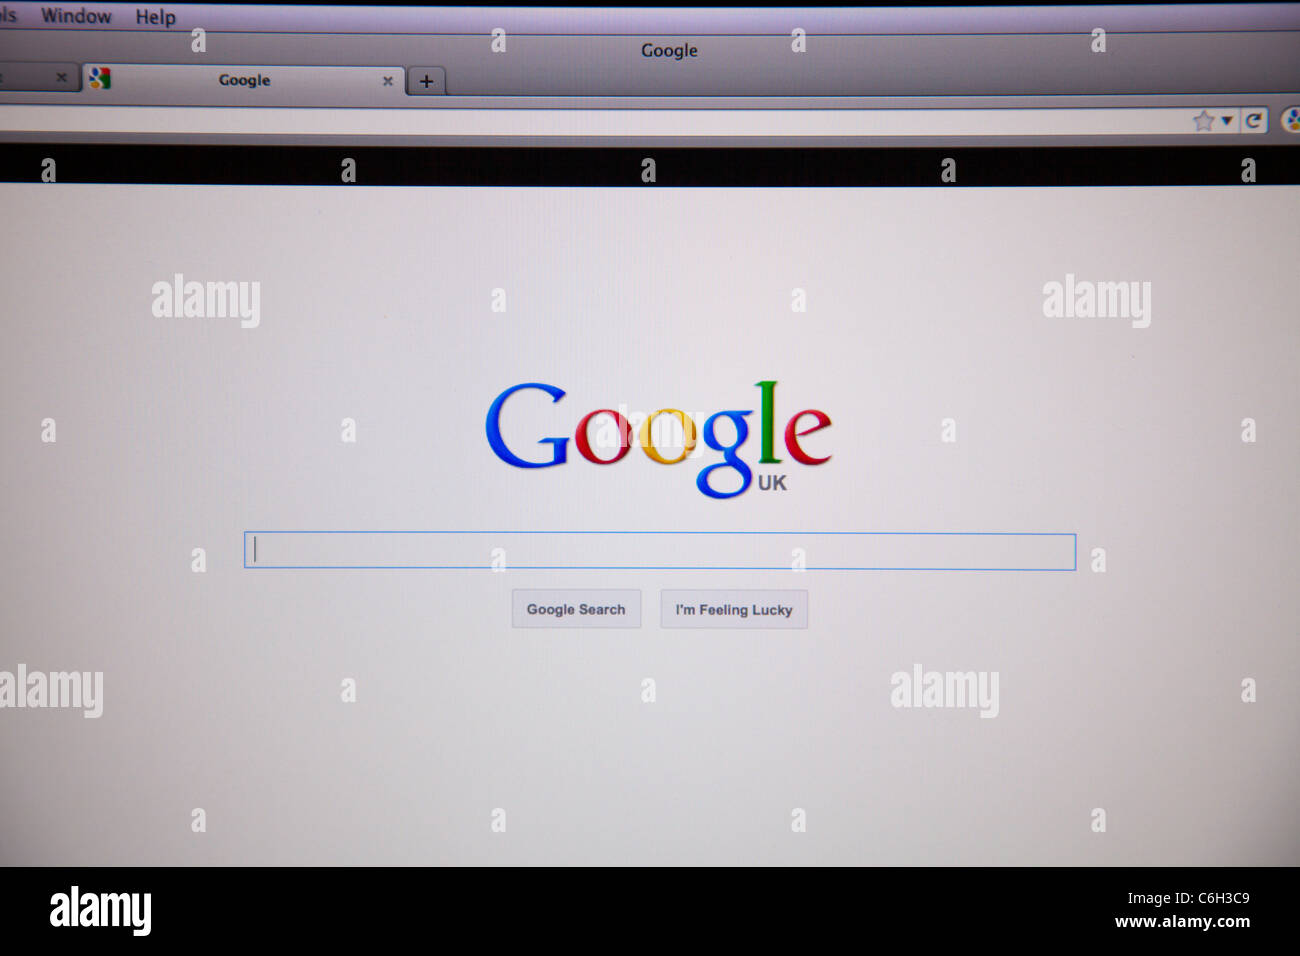 Internet land computer google search engine program for mac or pc logo start page - Stock Image